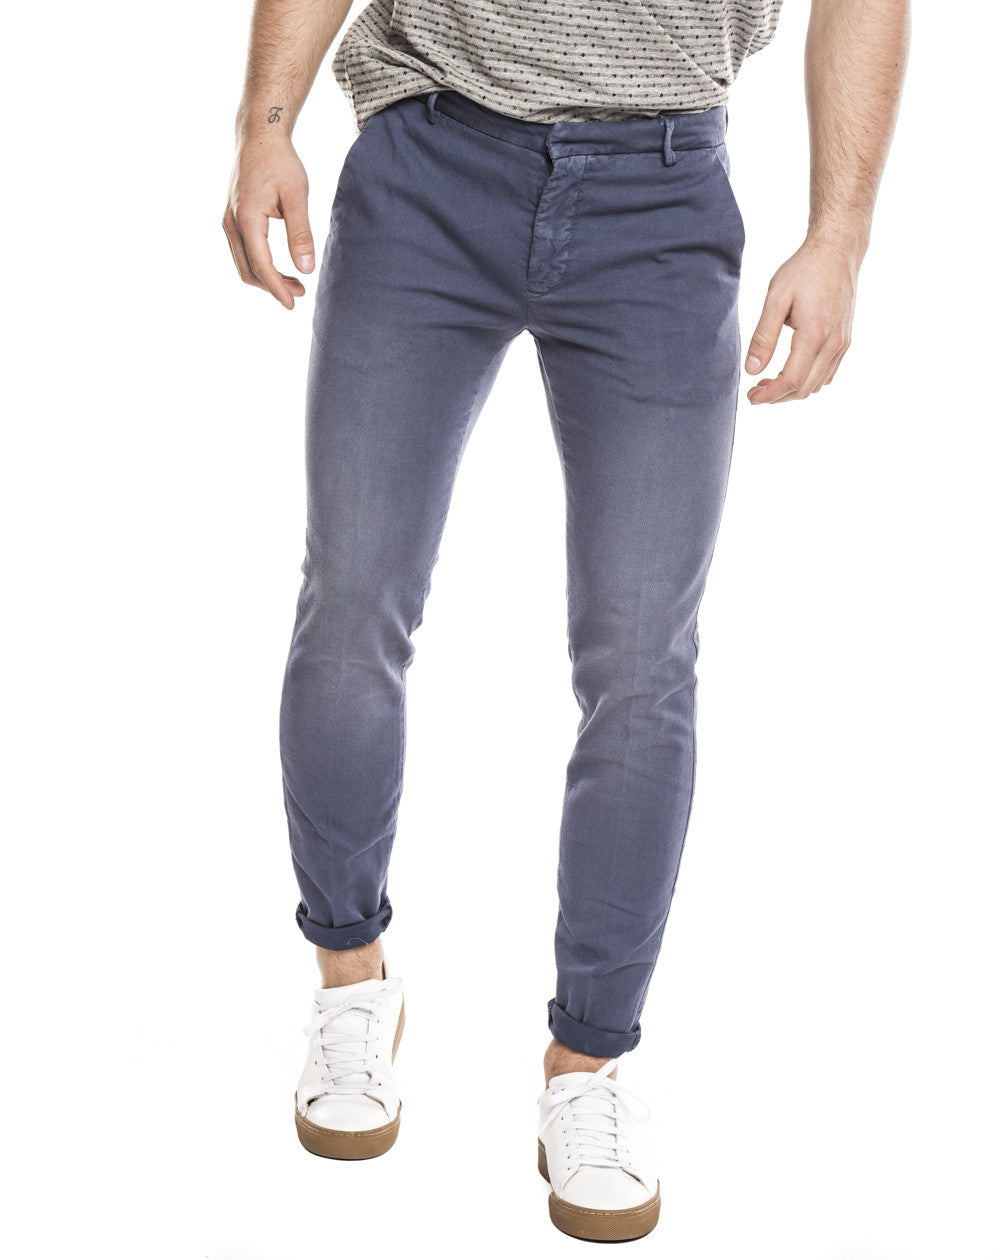 MEN'S CLOTHING | CASUAL BLUE PANTS | PANTS FOR MEN | BOTTOMS | TROUSERS | COTTON | MADE IN ITALY | SLIM FIT | NOHOW FOR CASUAL OUTFITS | NOHOW